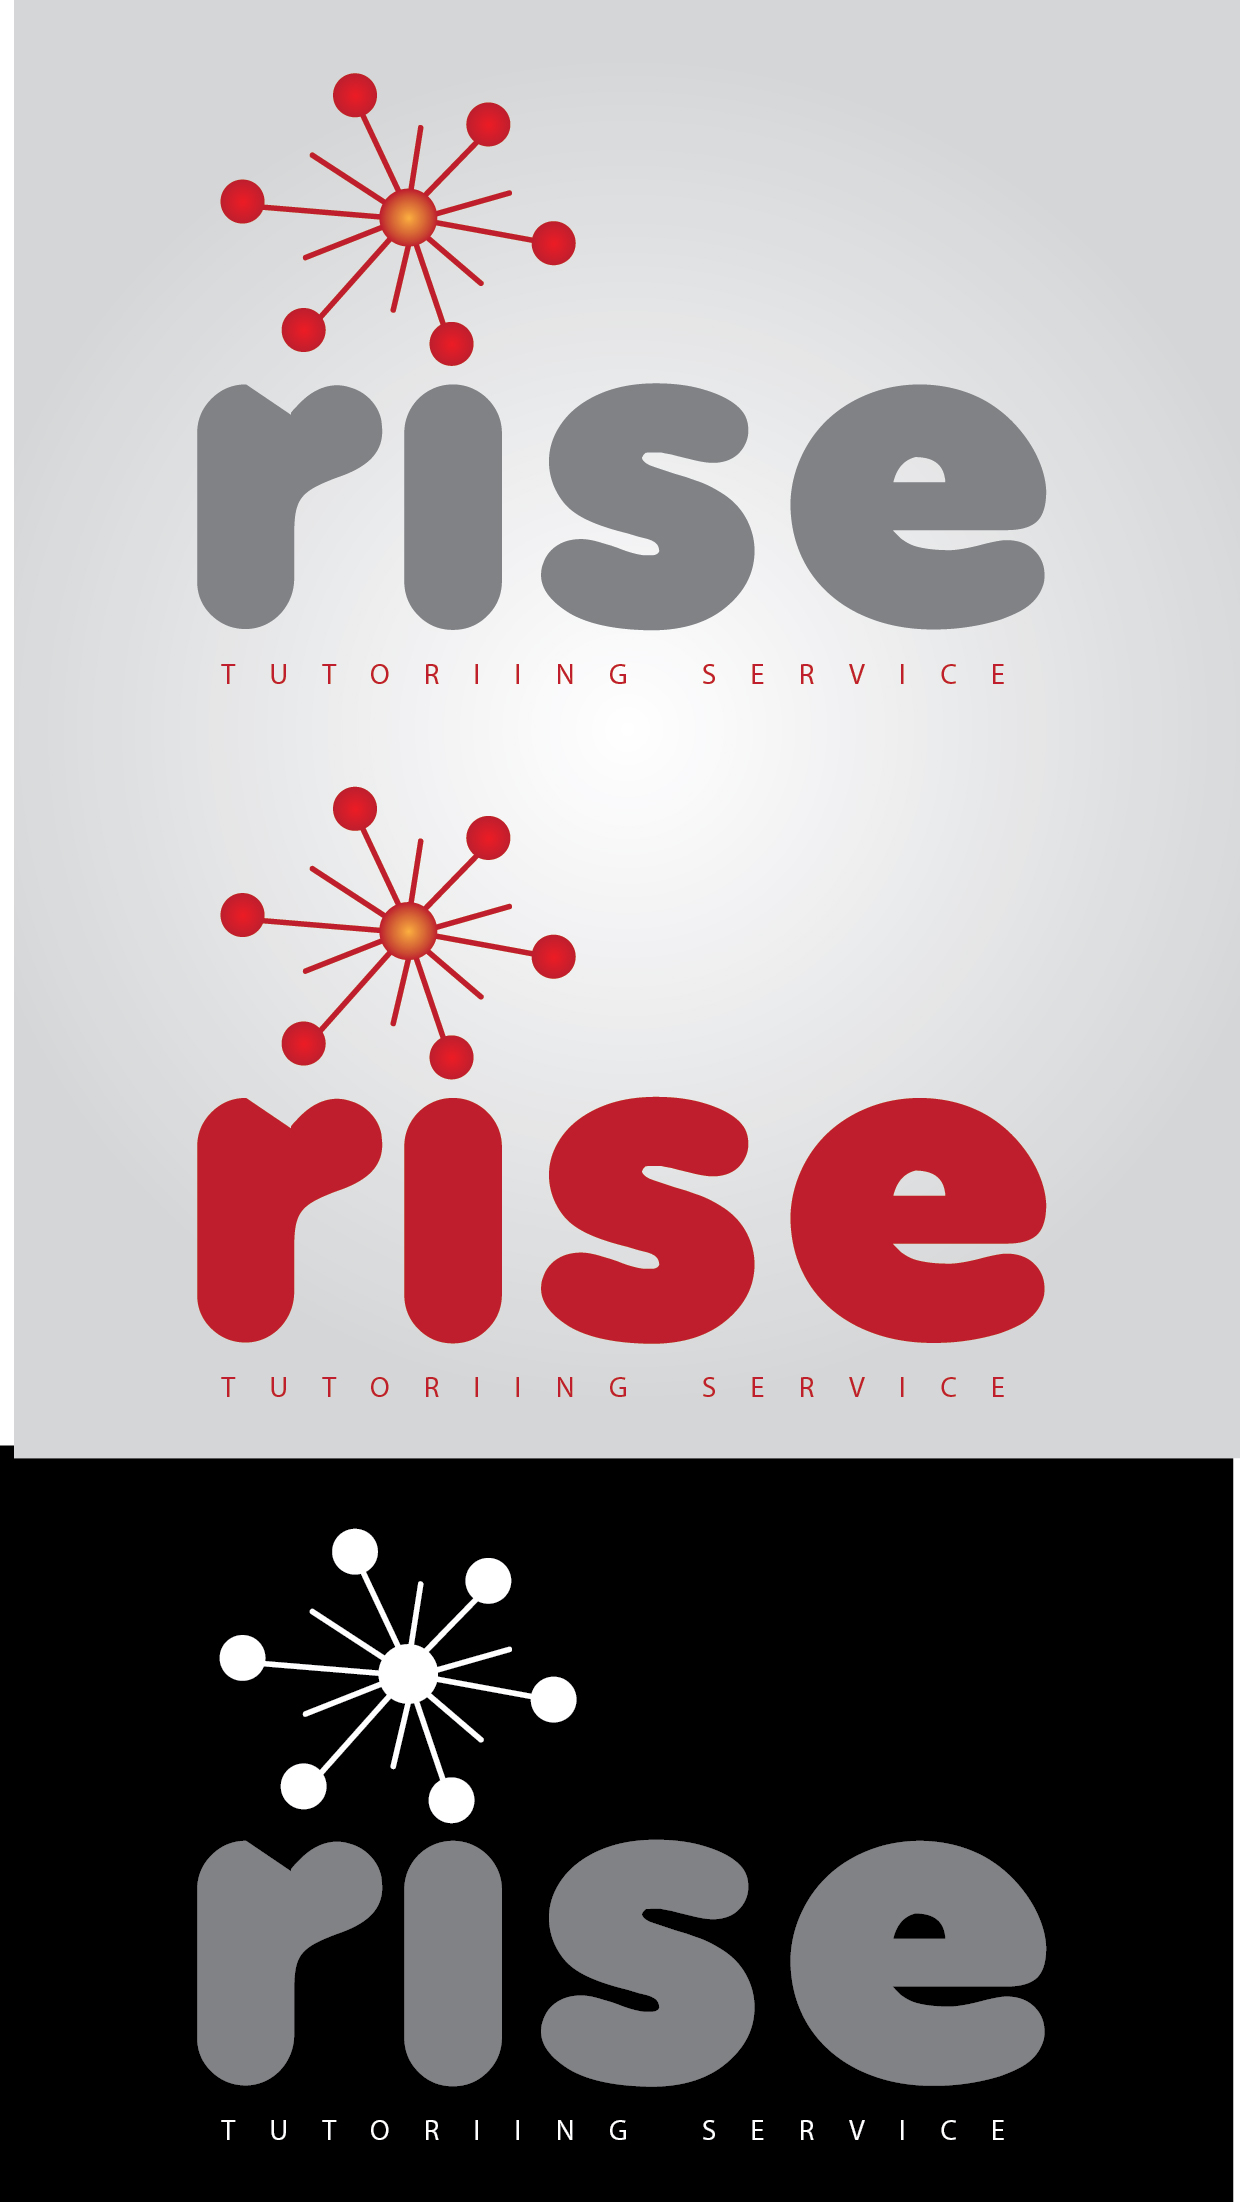 Logo Design by mediaproductionart - Entry No. 132 in the Logo Design Contest Imaginative Logo Design for Rise Tutoring Service.